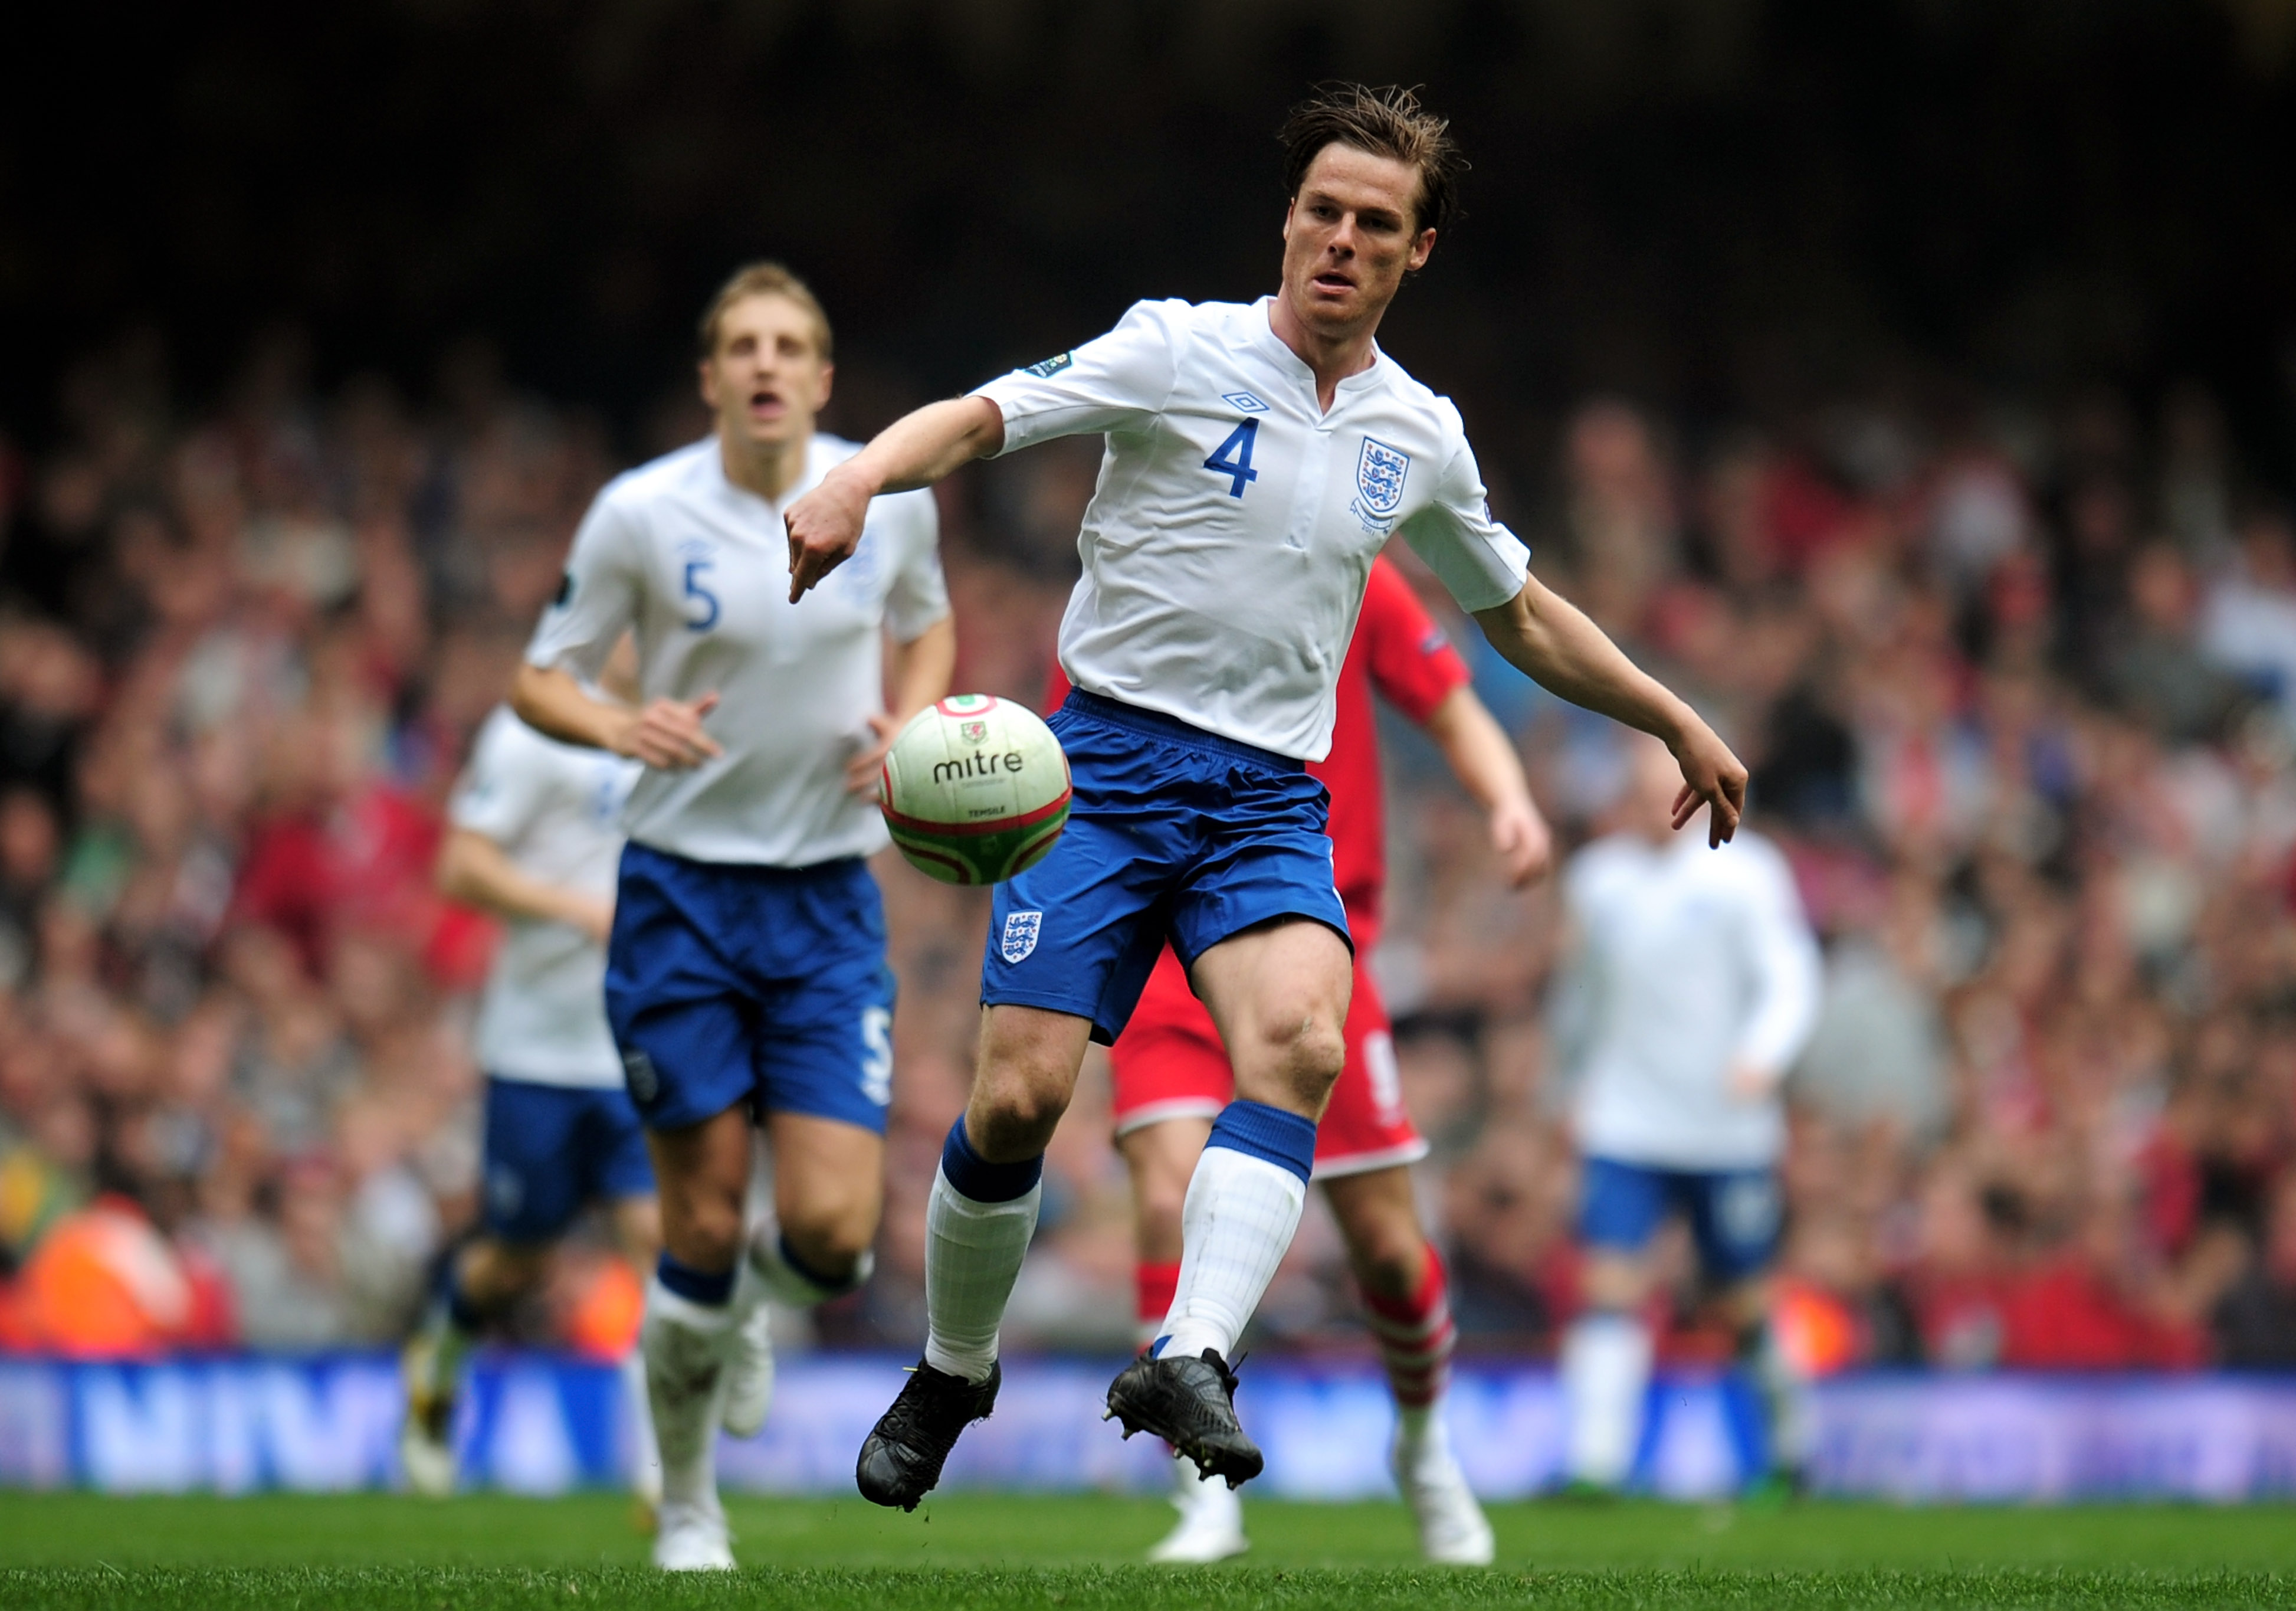 CARDIFF, WALES - MARCH 26:  Scott Parker of England controls the ball during the UEFA EURO 2012 Group G qualifying match between Wales and England at the Millennium Stadium on March 26, 2011 in Cardiff, Wales.  (Photo by Shaun Botterill/Getty Images)